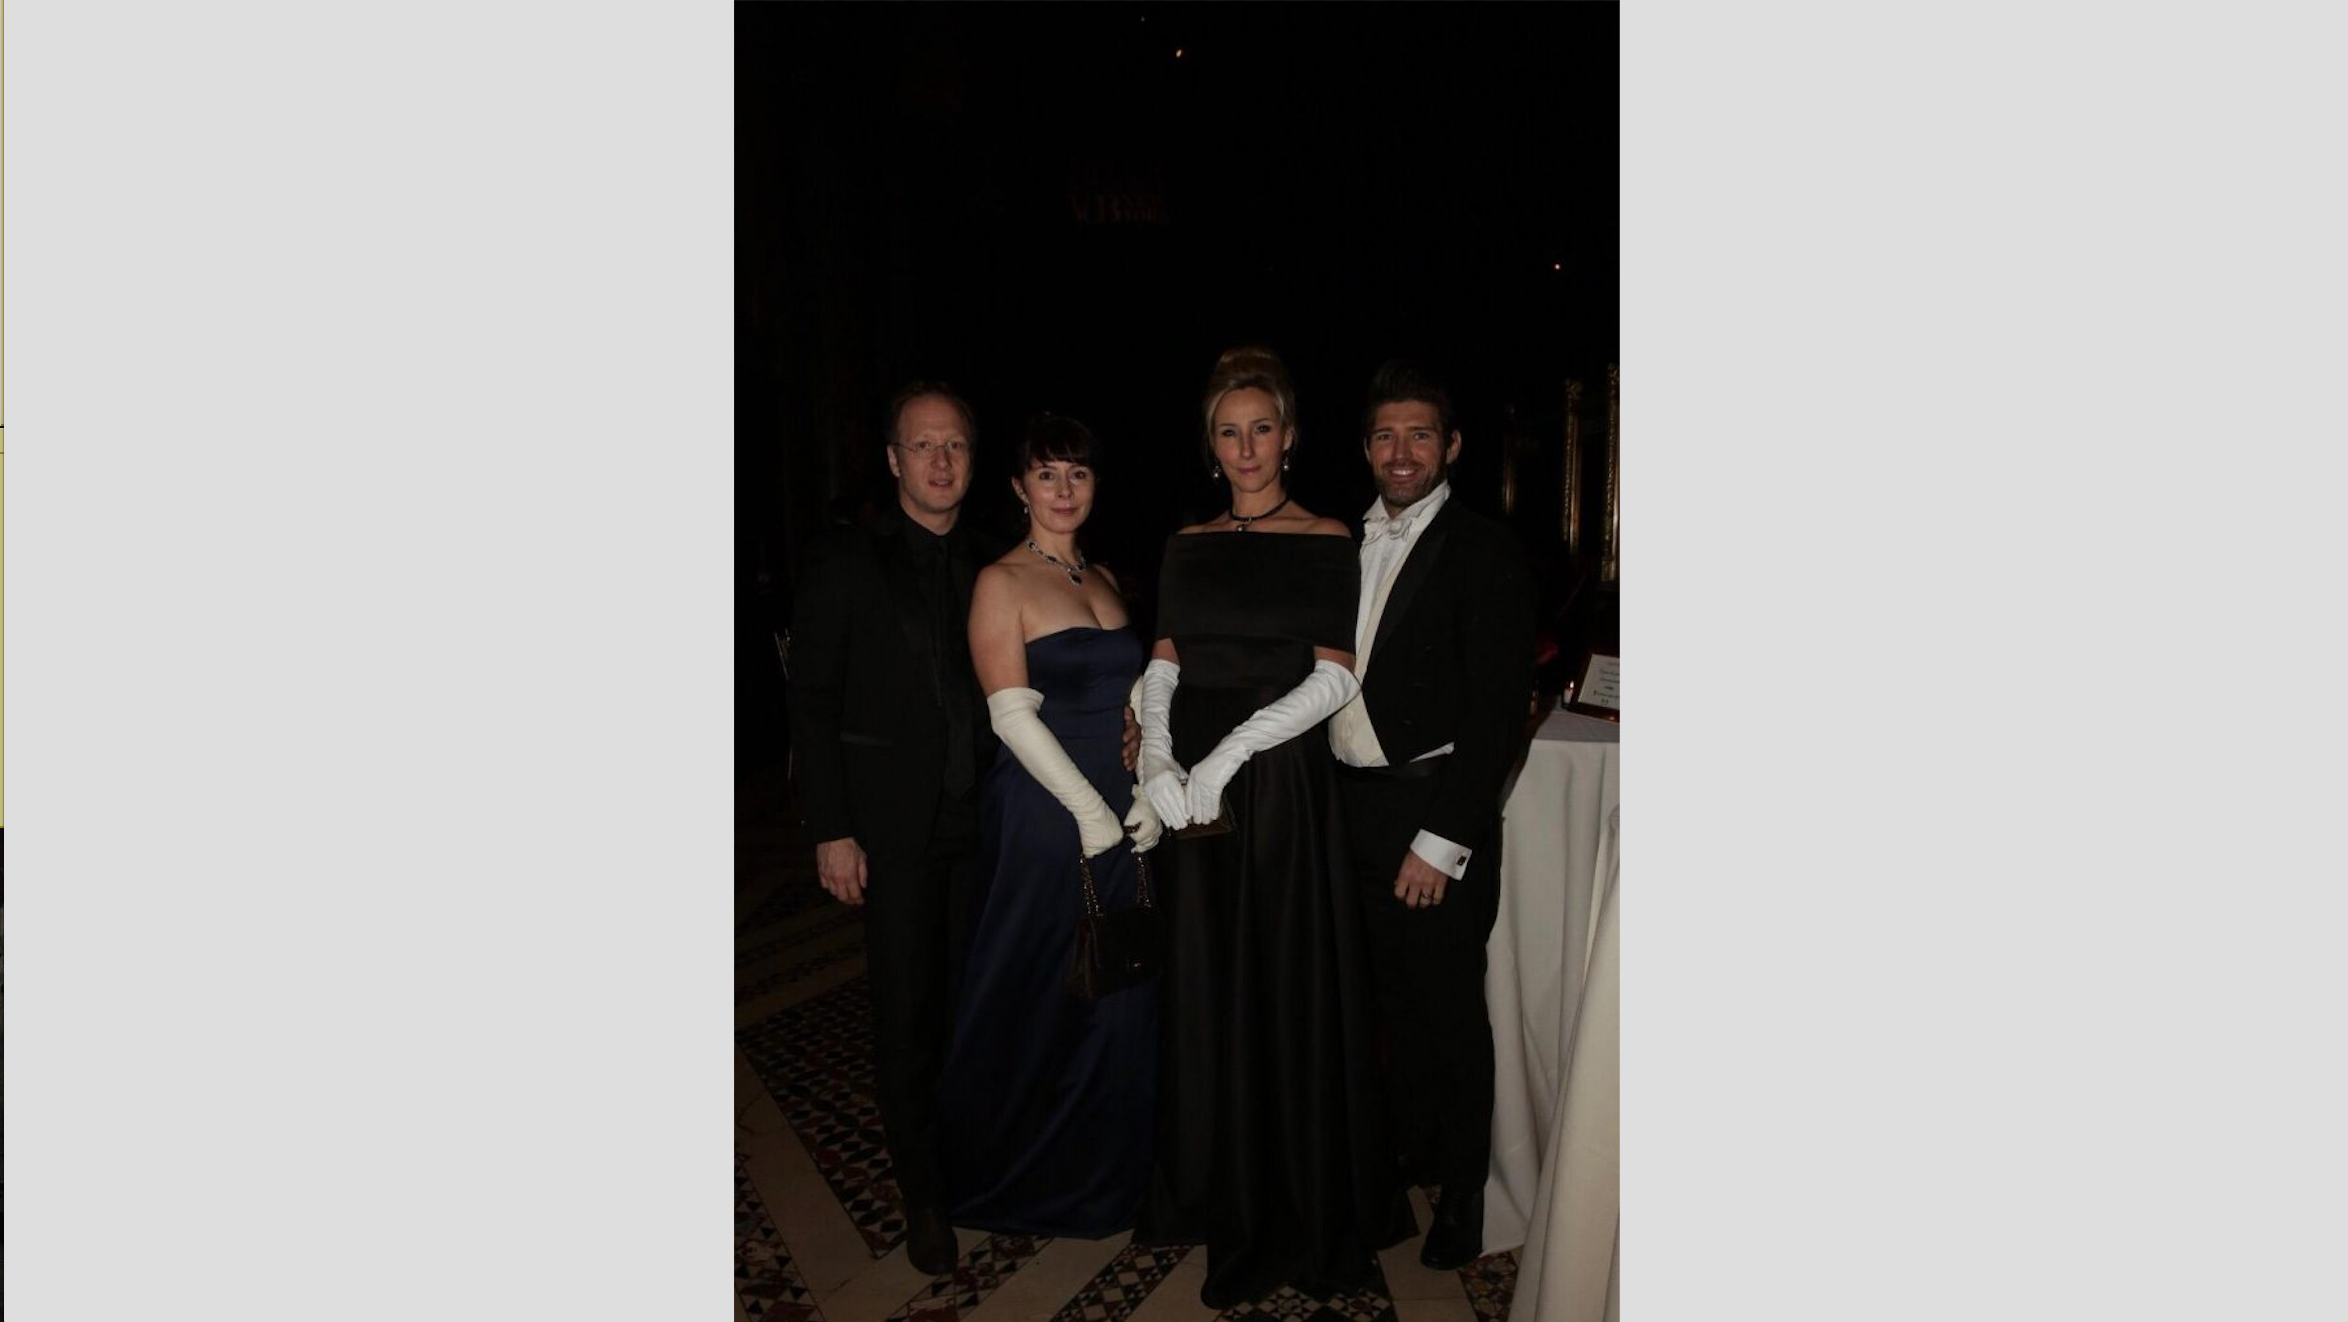 New Article on Medium about The 64th Viennese Opera Ball